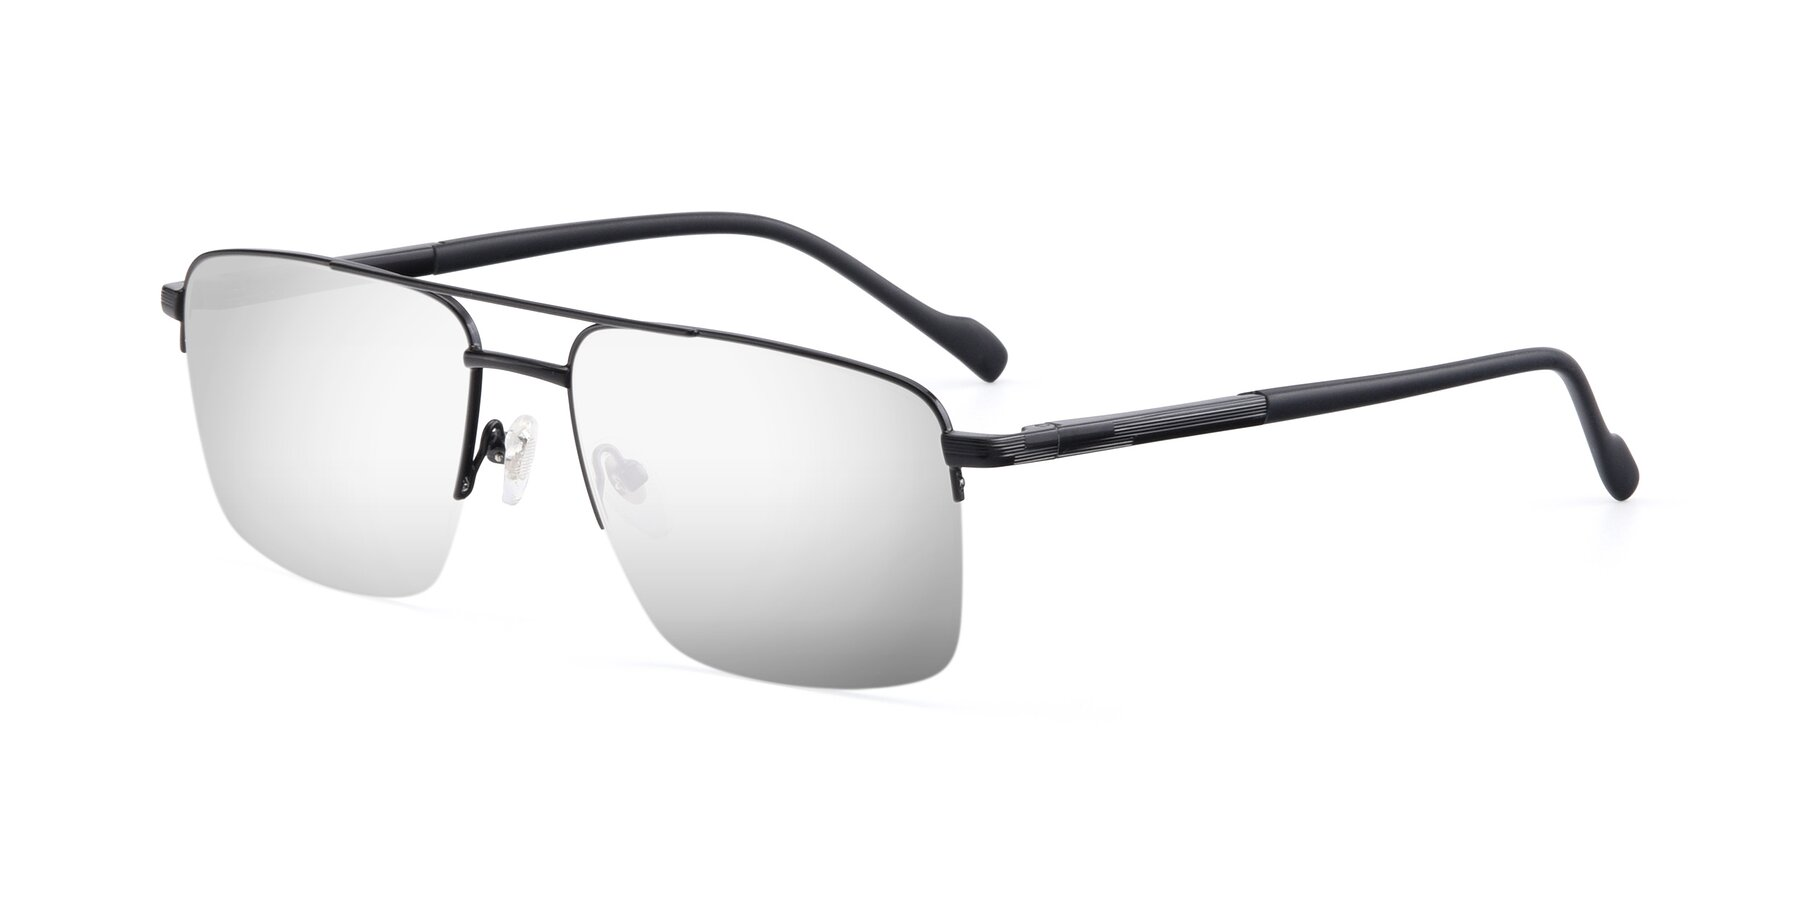 Angle of 19013 in Black with Silver Mirrored Lenses